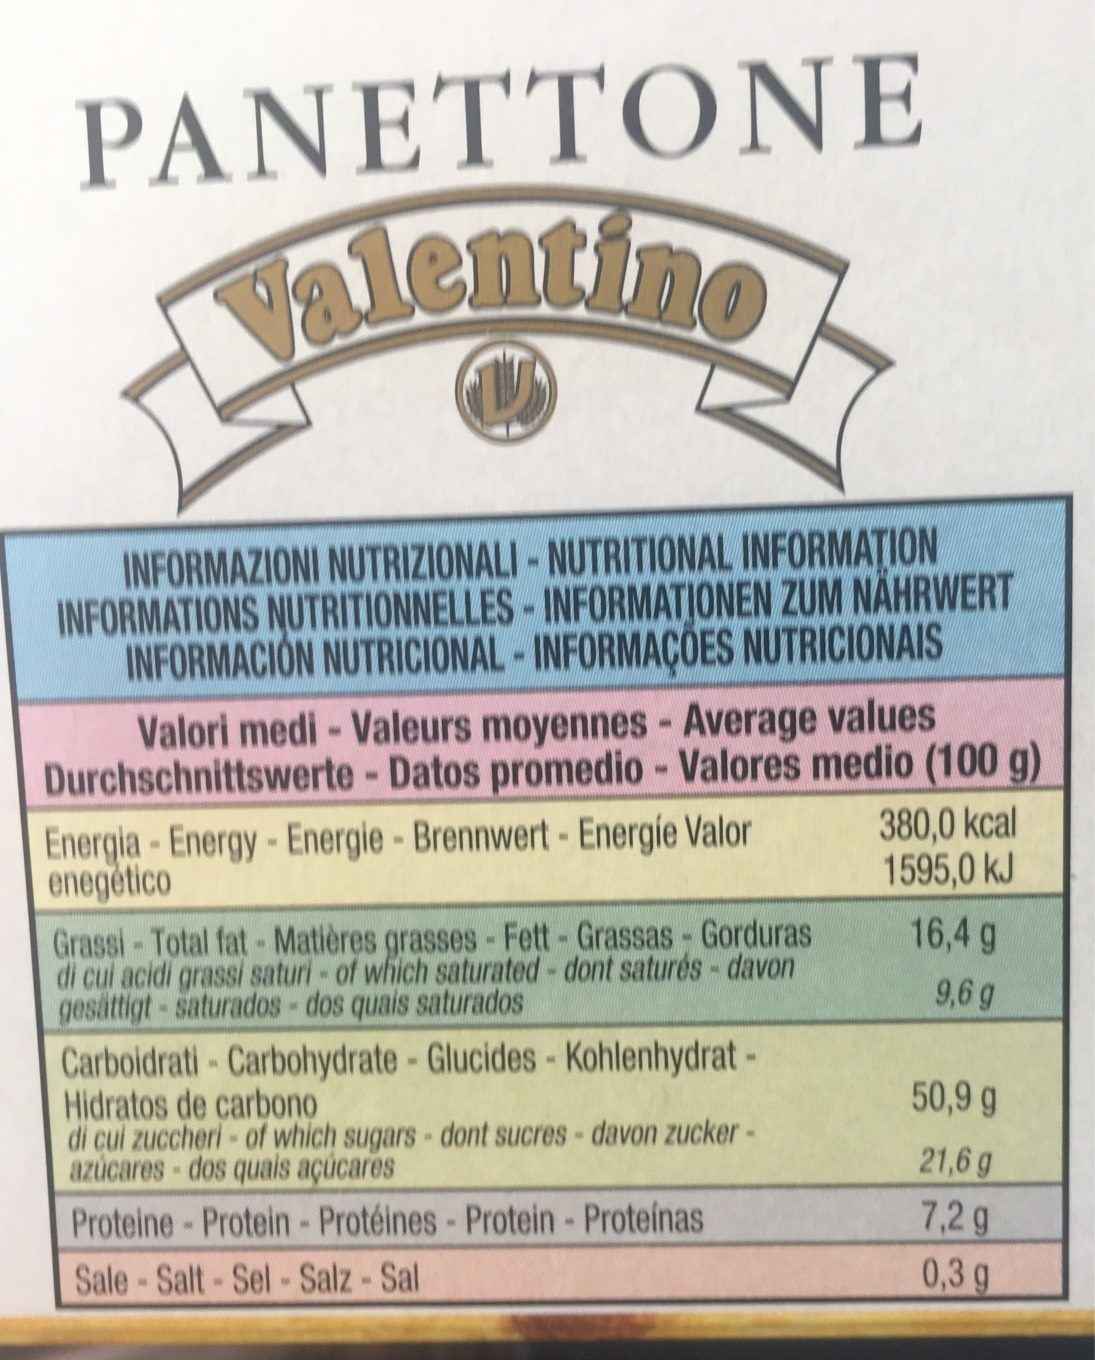 Valentino Cake Italian Specialty, Panettone - Informations nutritionnelles - fr